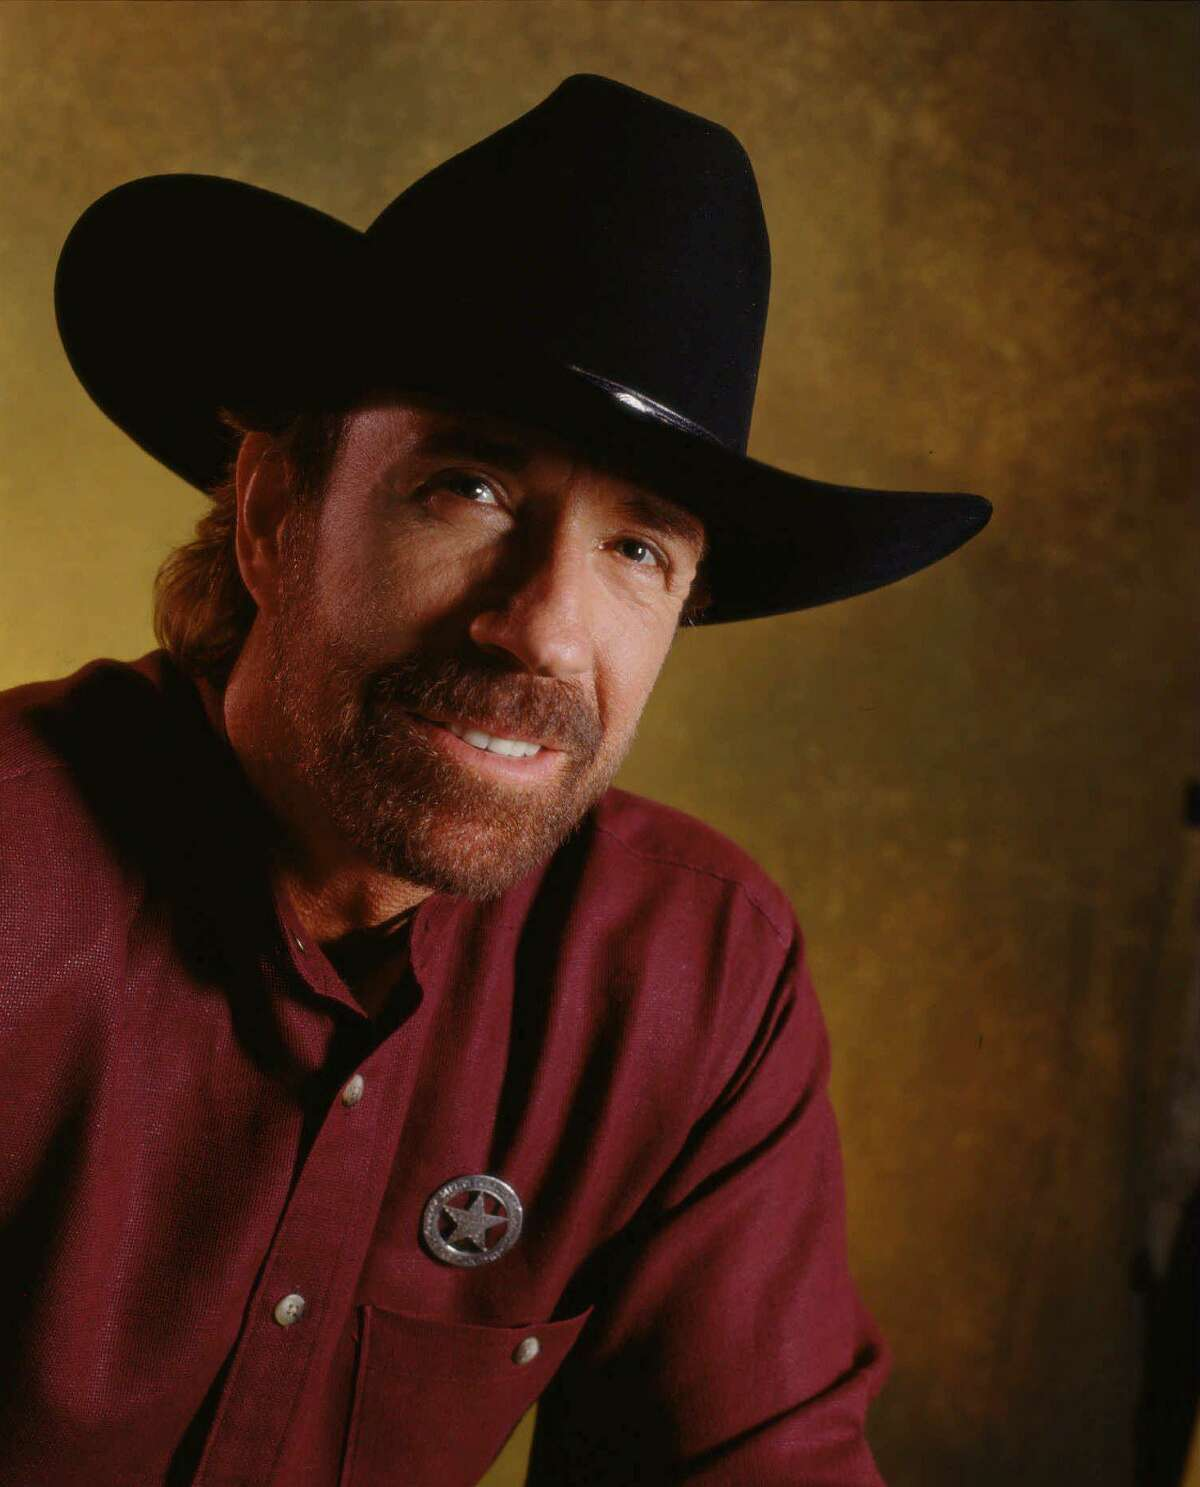 Chuck Norris stars as modern-day Texas Ranger Cordell Walker, whose independent crime-solving methods have their roots in the rugged traditions of the Old West, in the action-drama series WALKER, TEXAS RANGER, broadcast Saturdays (10:00-11:00 PM, ET/PT) on the CBS Television Network.